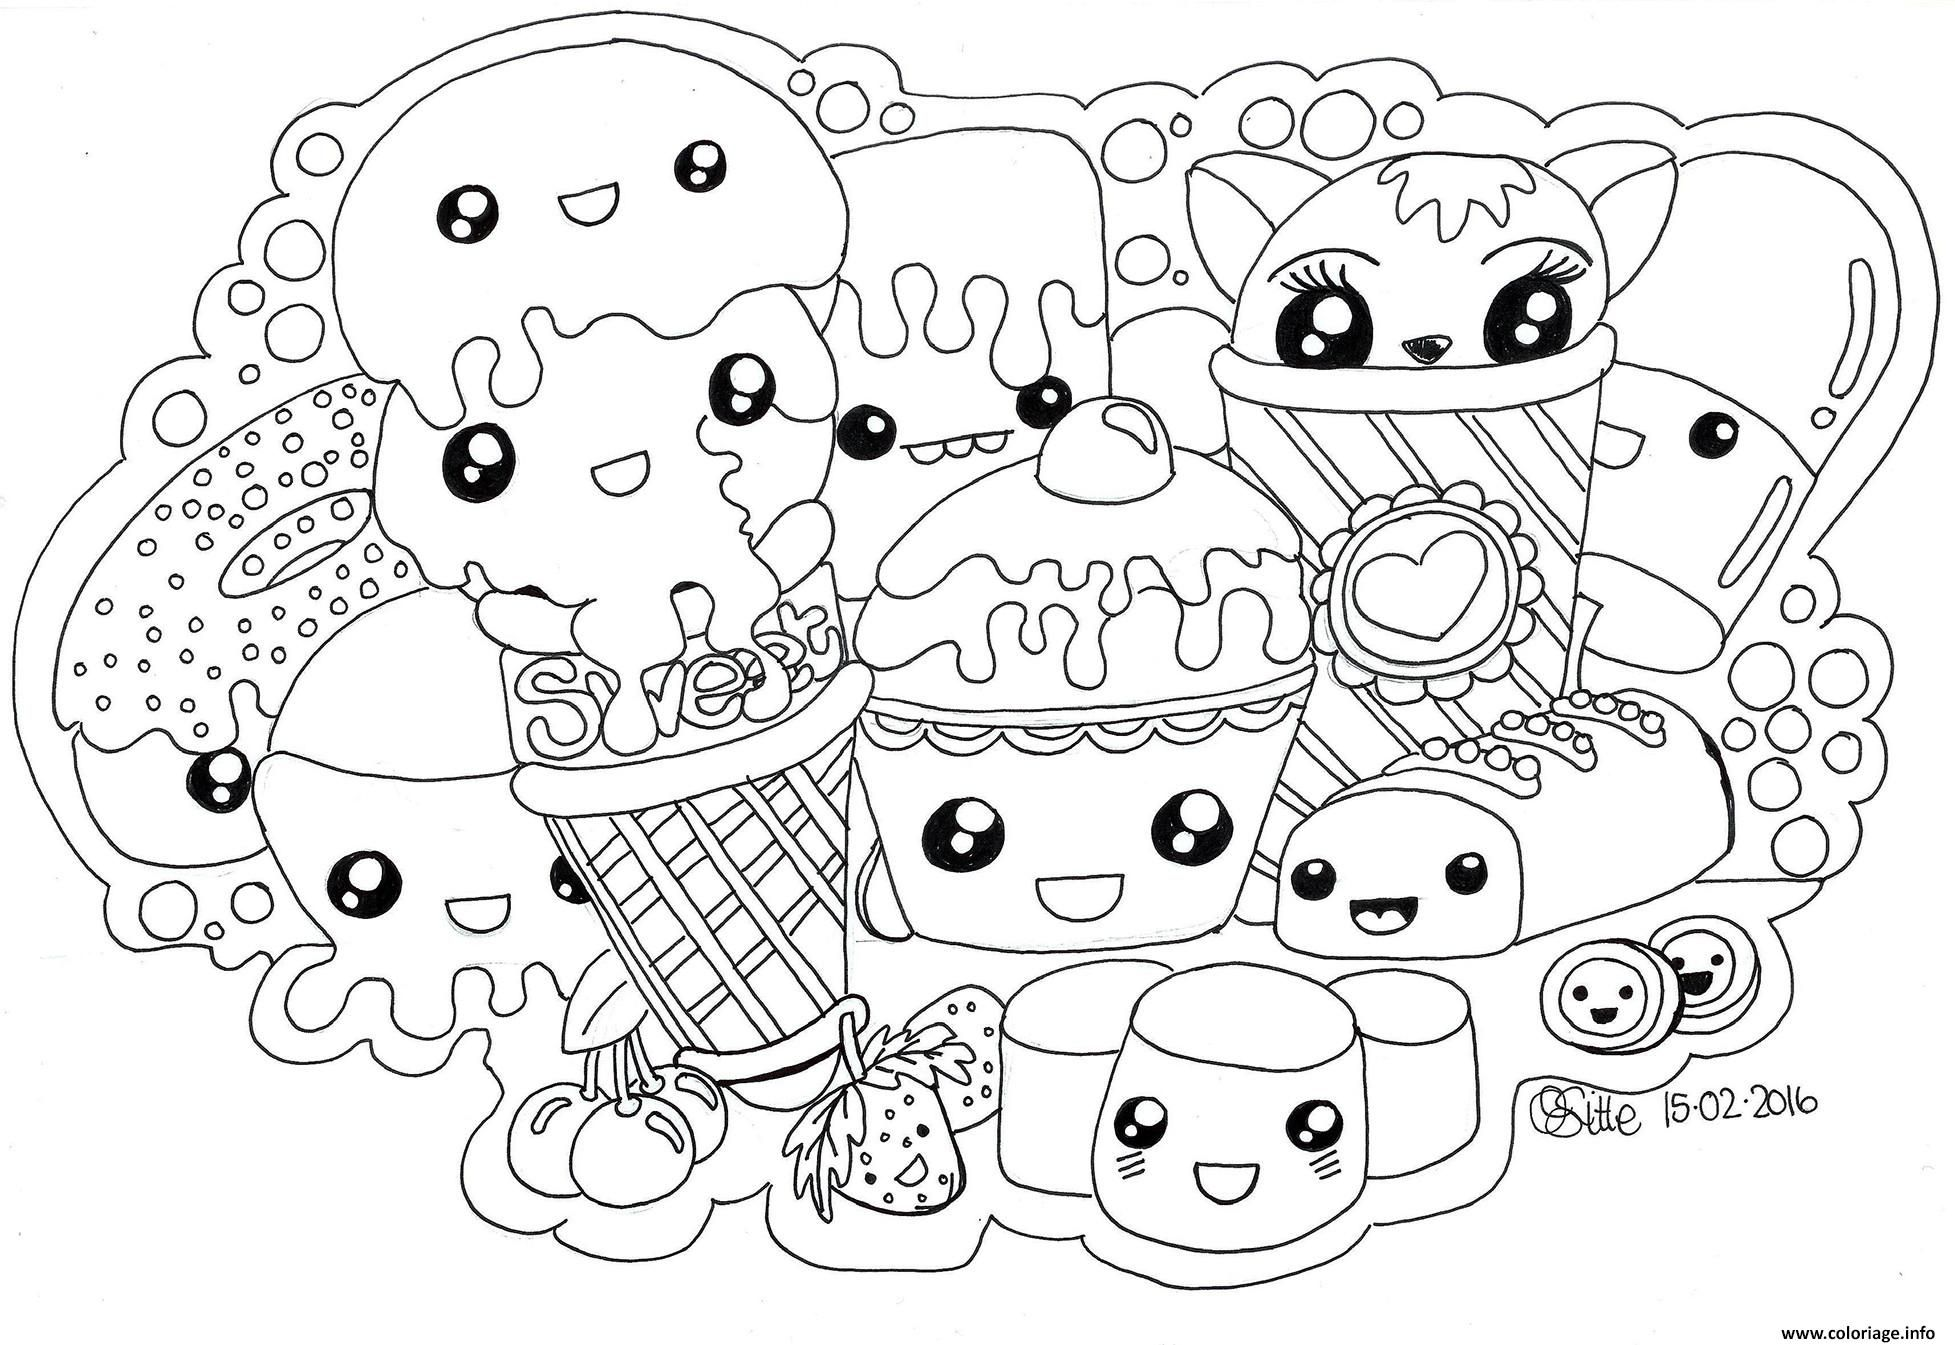 Coloriage kawaii sweets colour manga cute dessin imprimer lolipops coloriage kawaii - Dessin manga kawaii ...